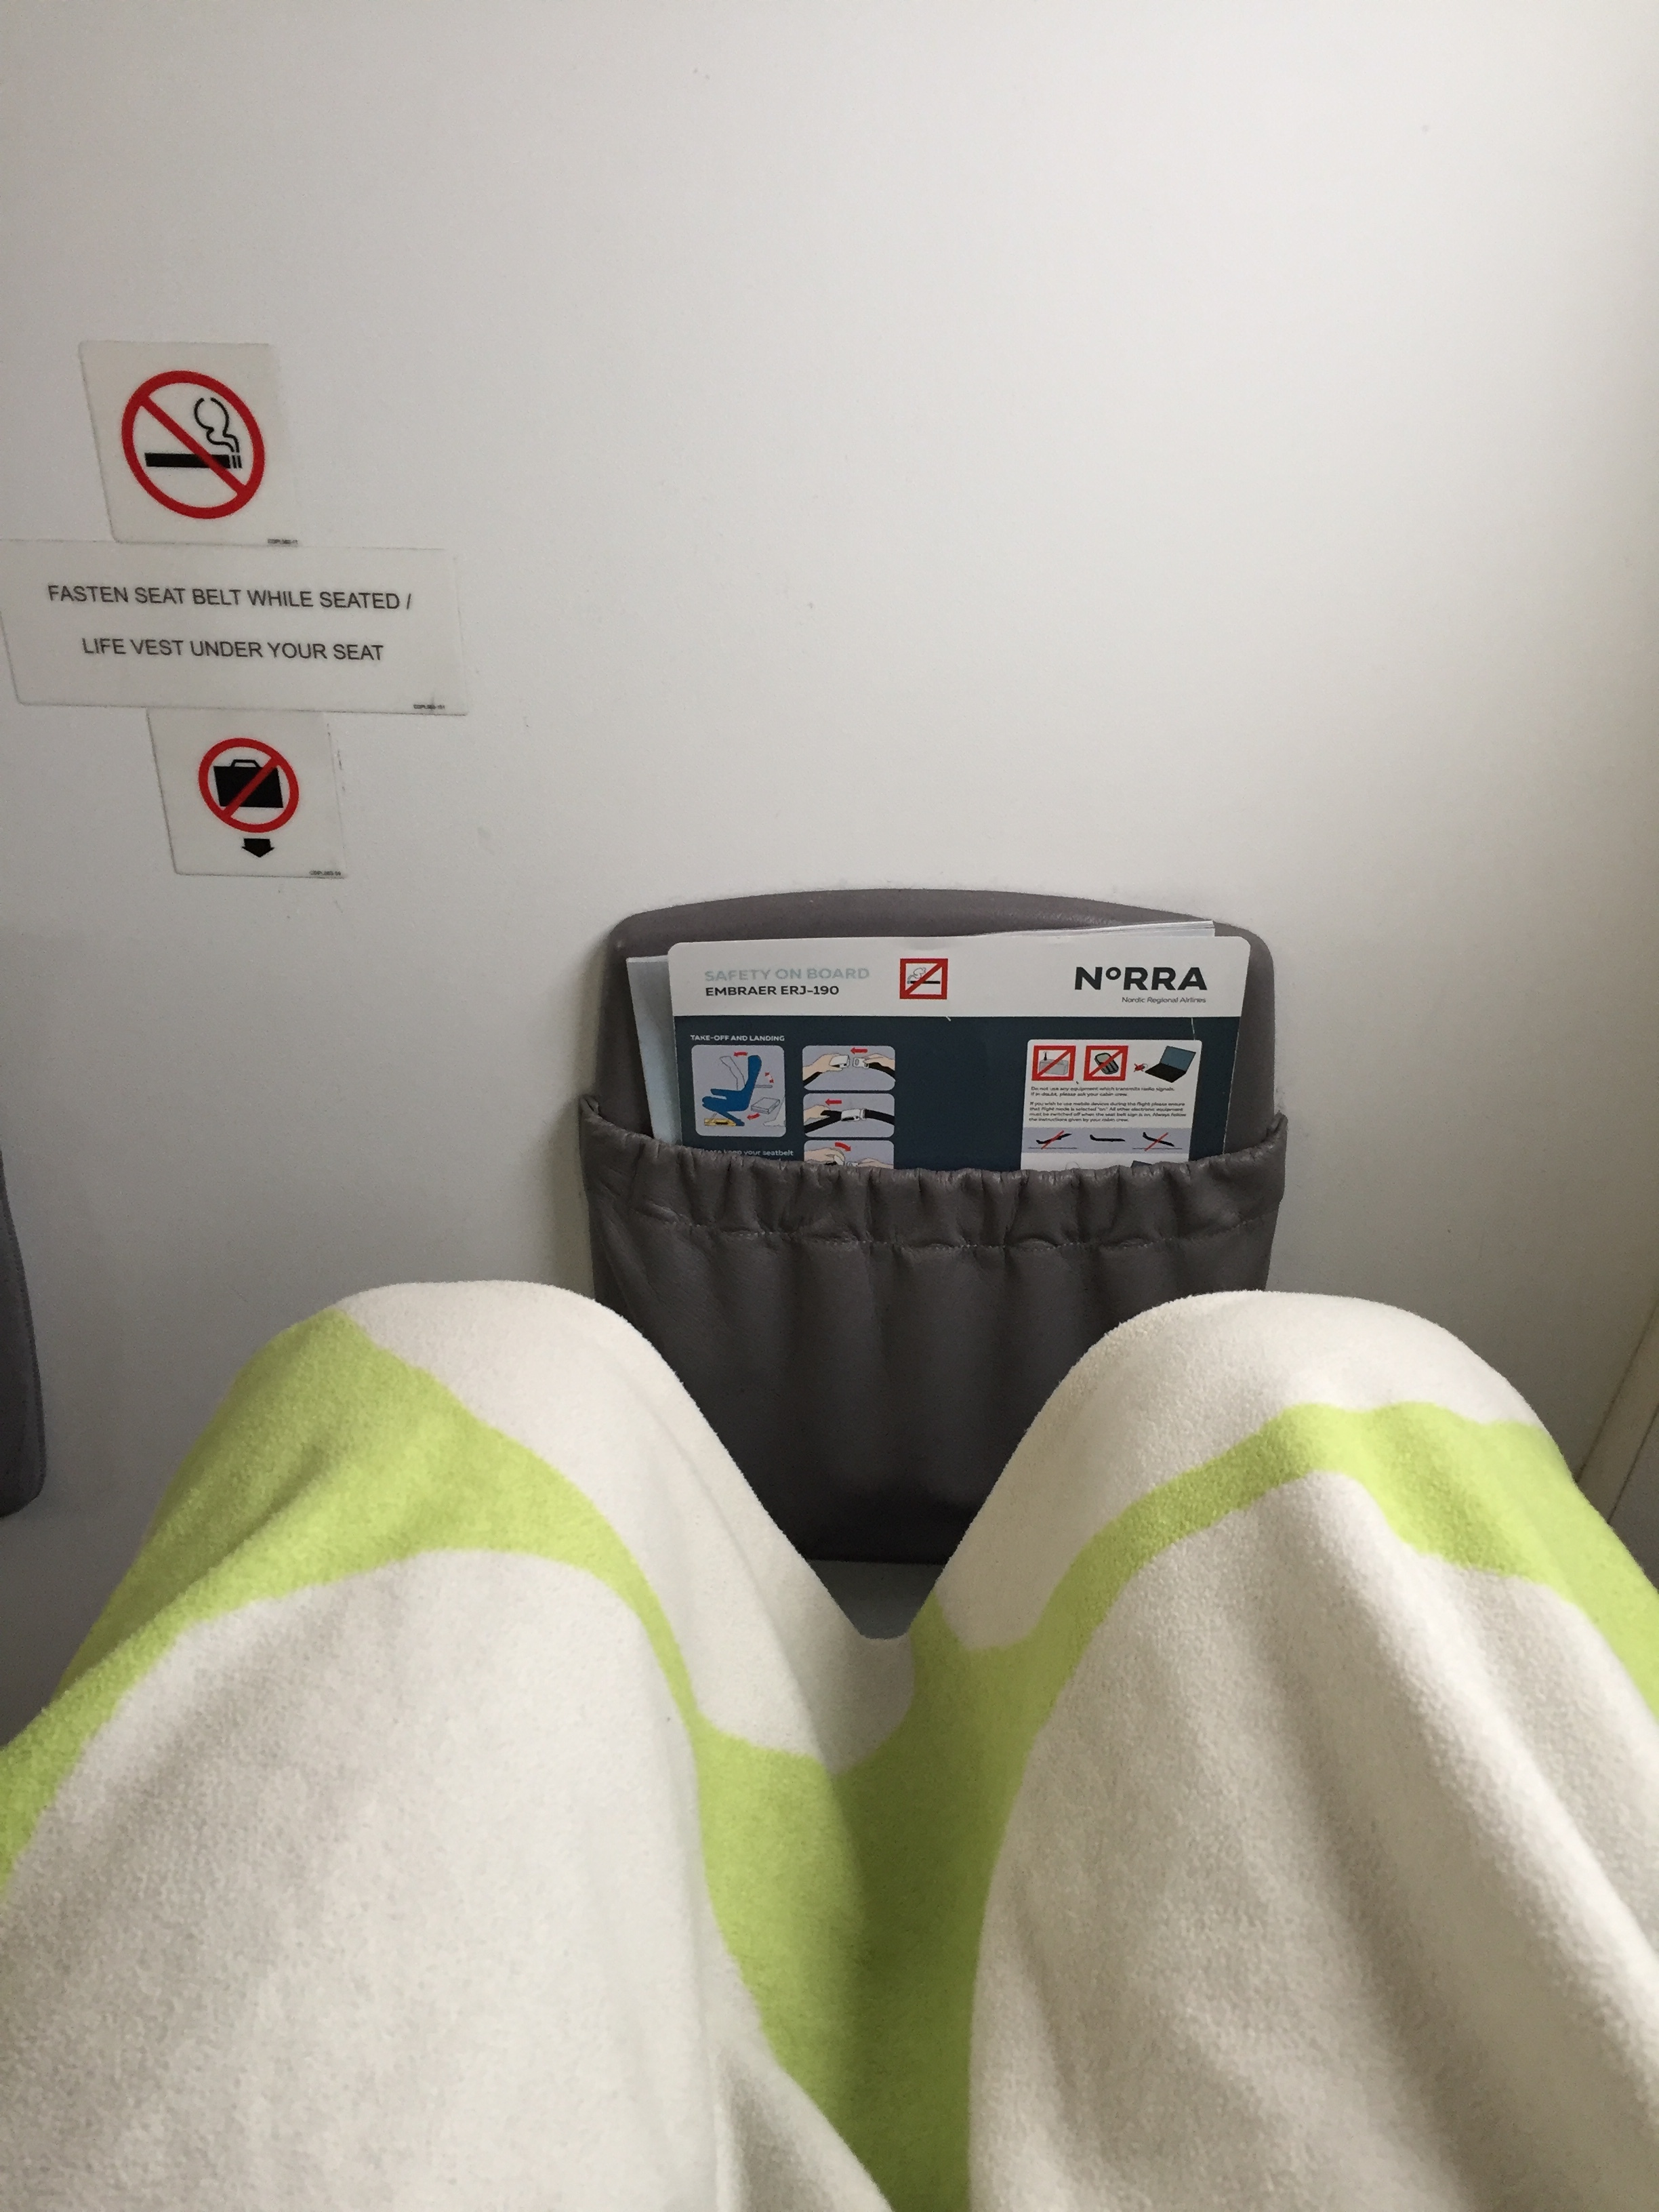 I went to see whether there was more space in the front row, actually, there wasn't! In fact, it was not possible for me to fully stretch the legs, so, as the business class section was only half full, I took another seat a bit behind